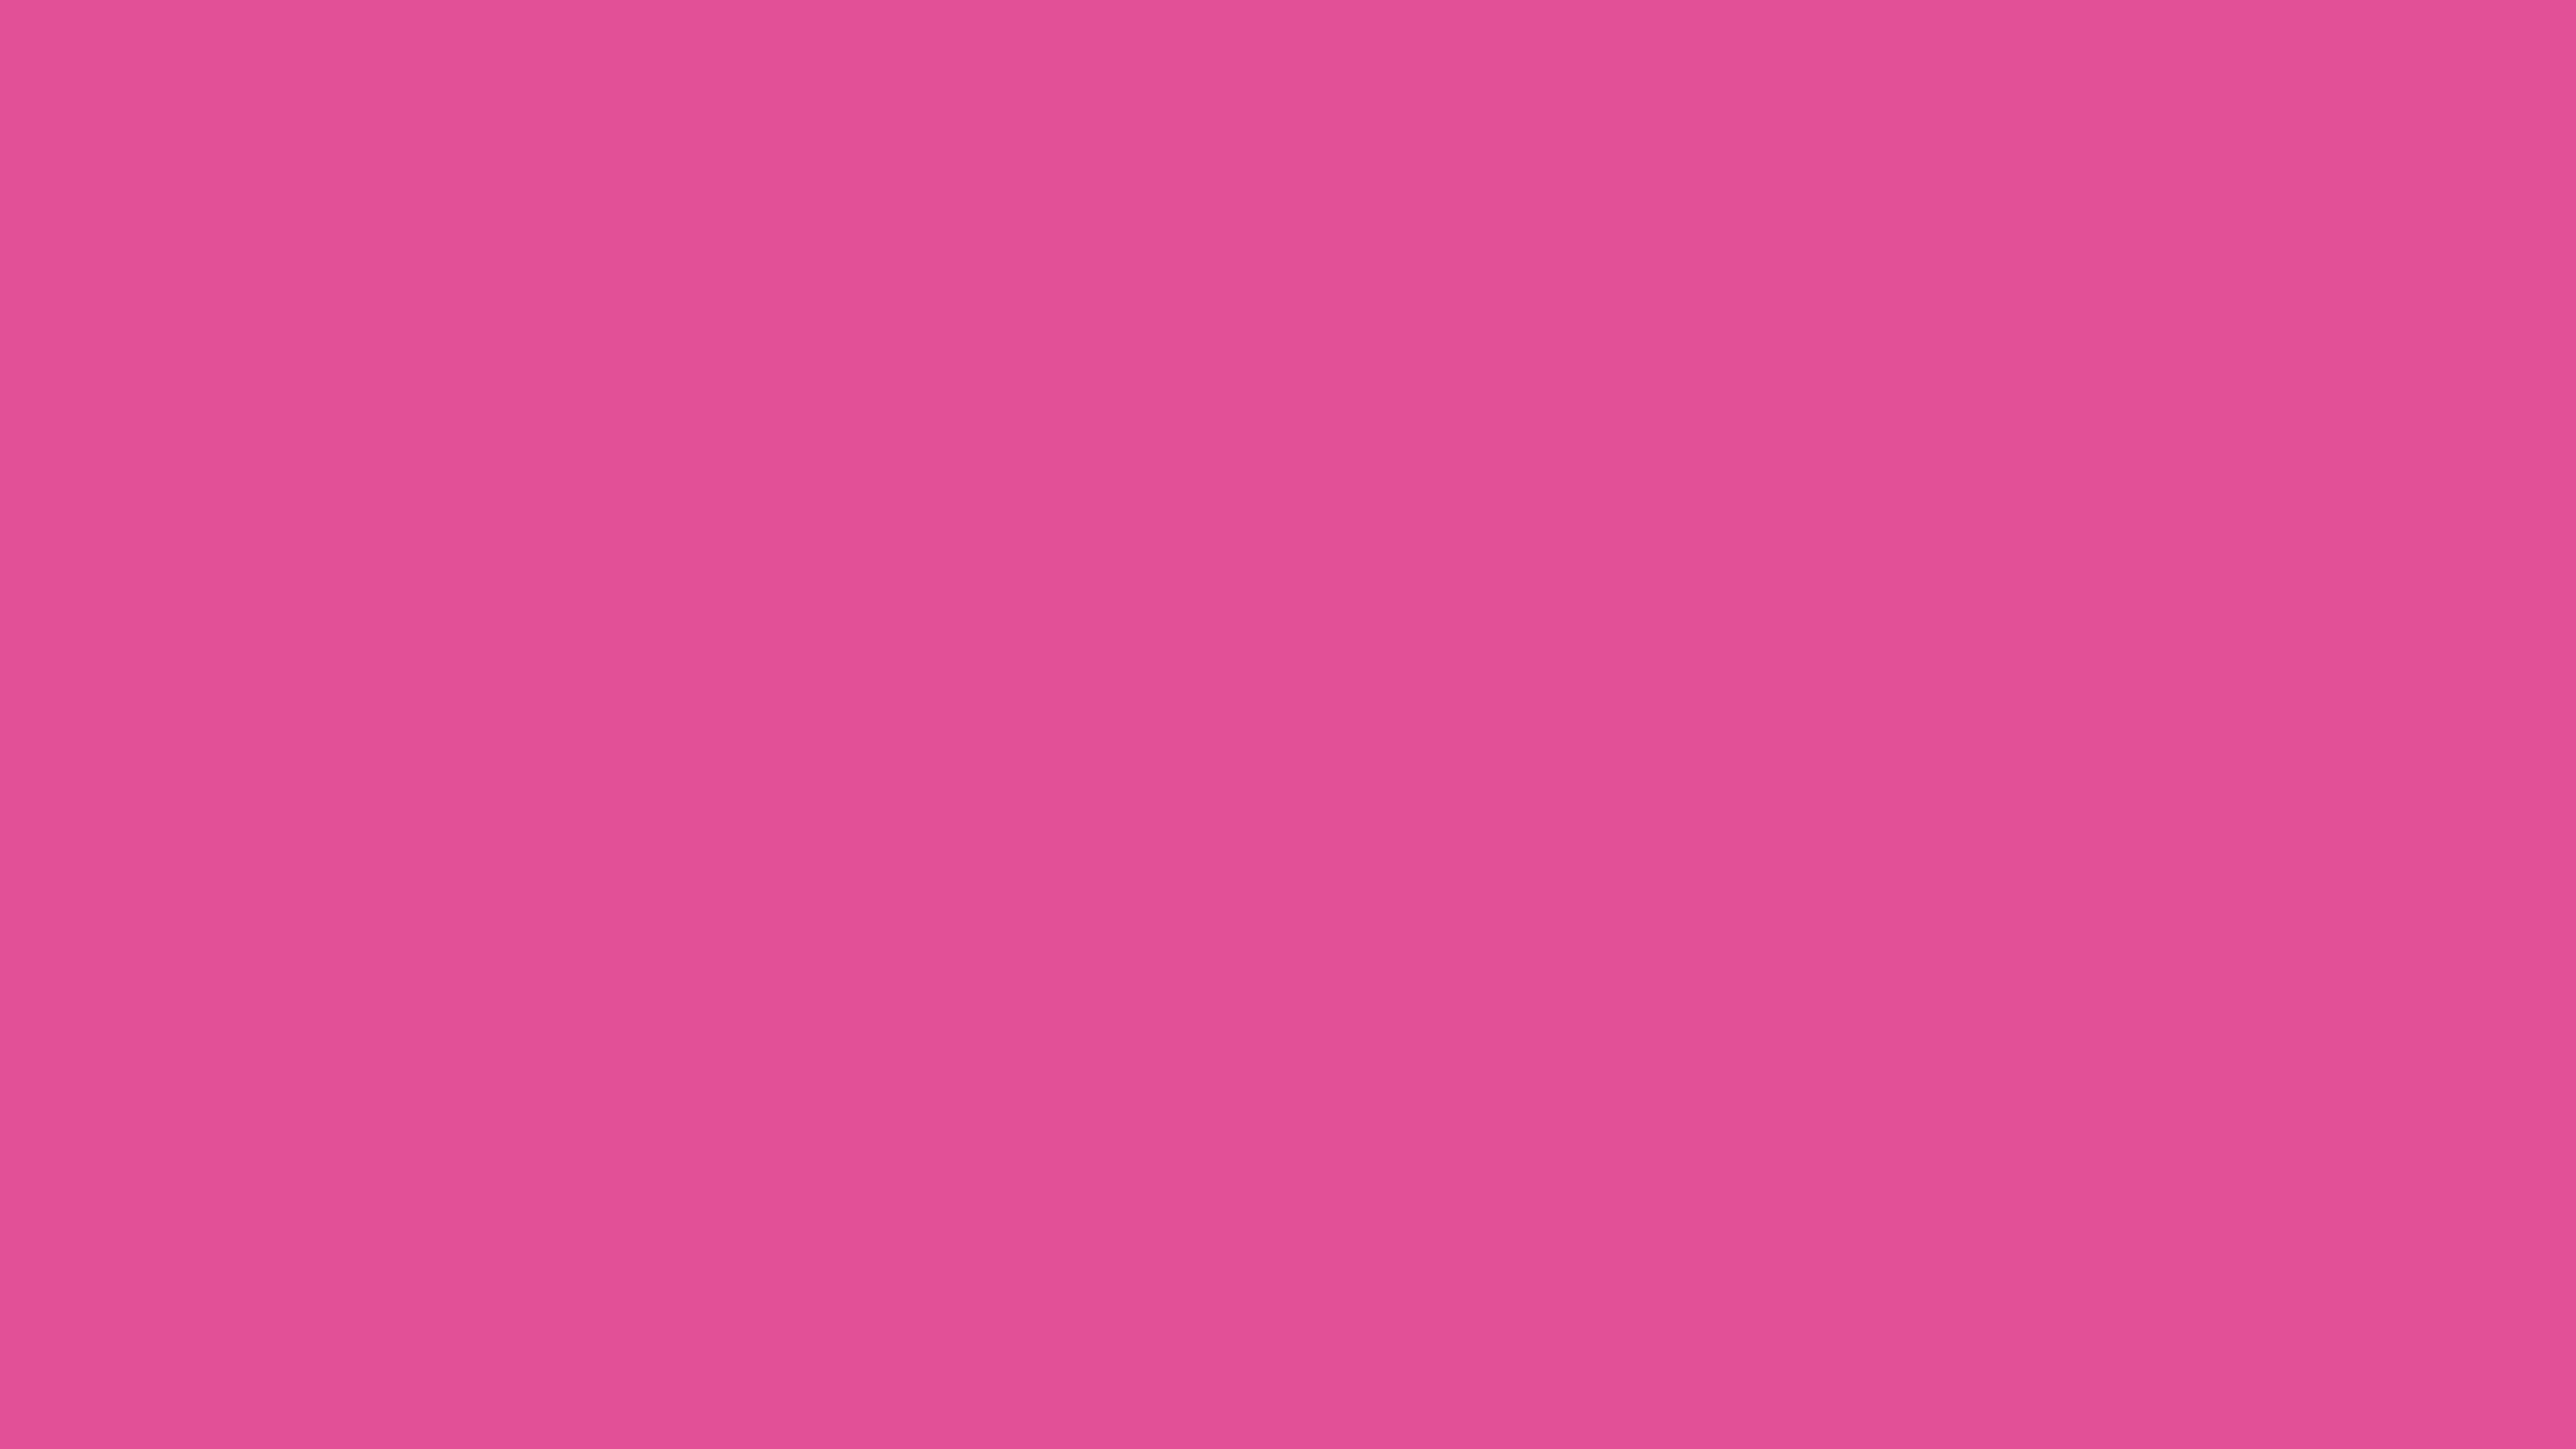 5120x2880 Raspberry Pink Solid Color Background